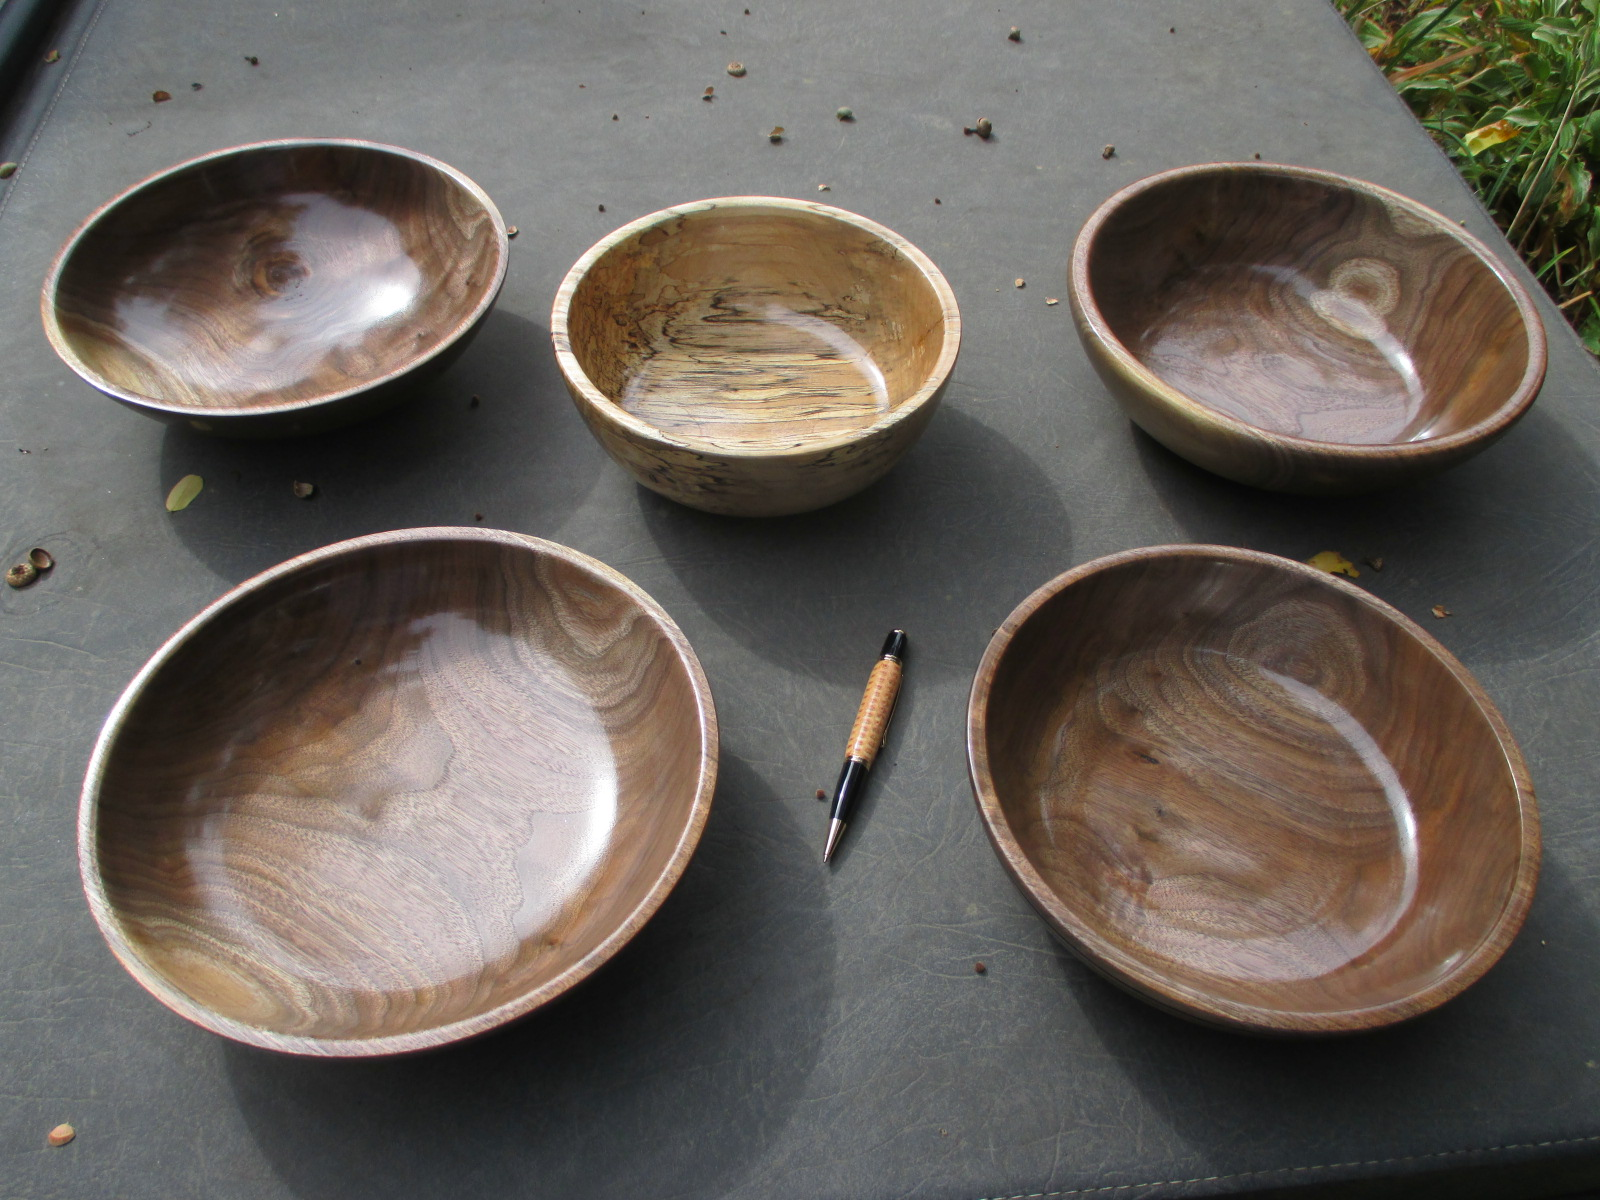 Grinnell Walnut and Birch Bowls